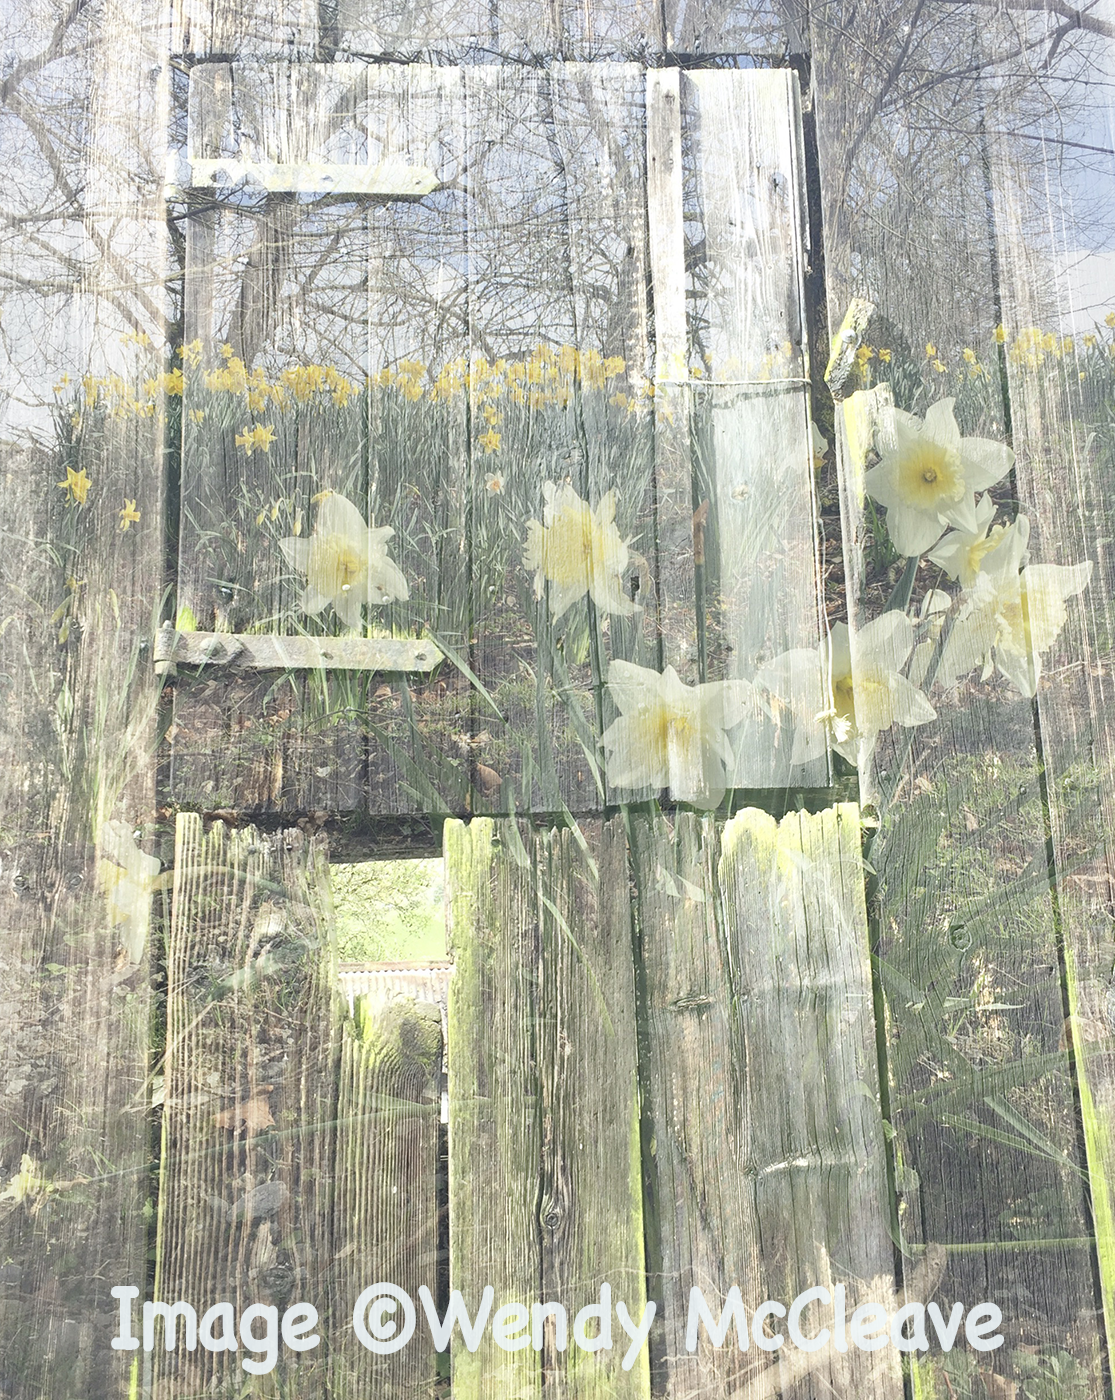 Composite image of old barn door overlaid with image of daffodils and woods behind